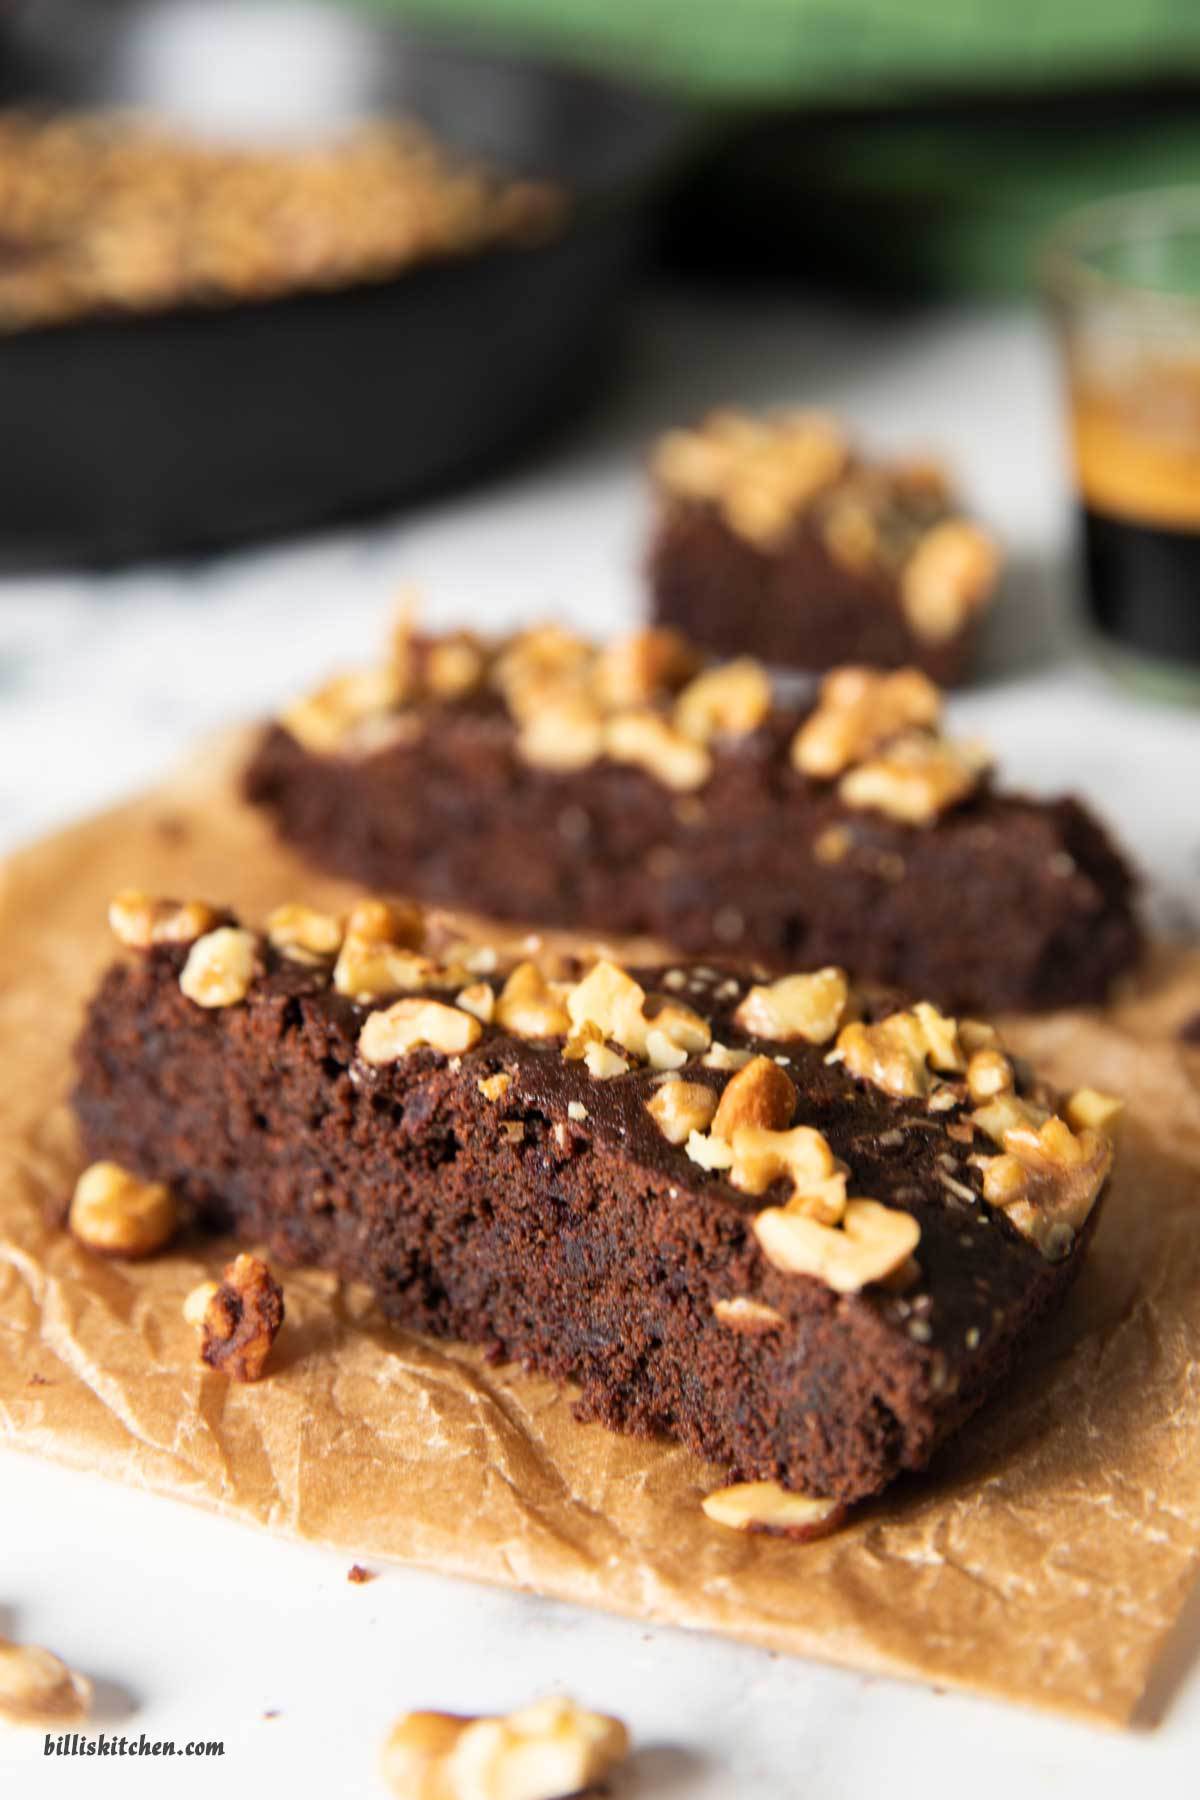 An image showing a closer shot of the sliced brownies, highlighting the texture inside.